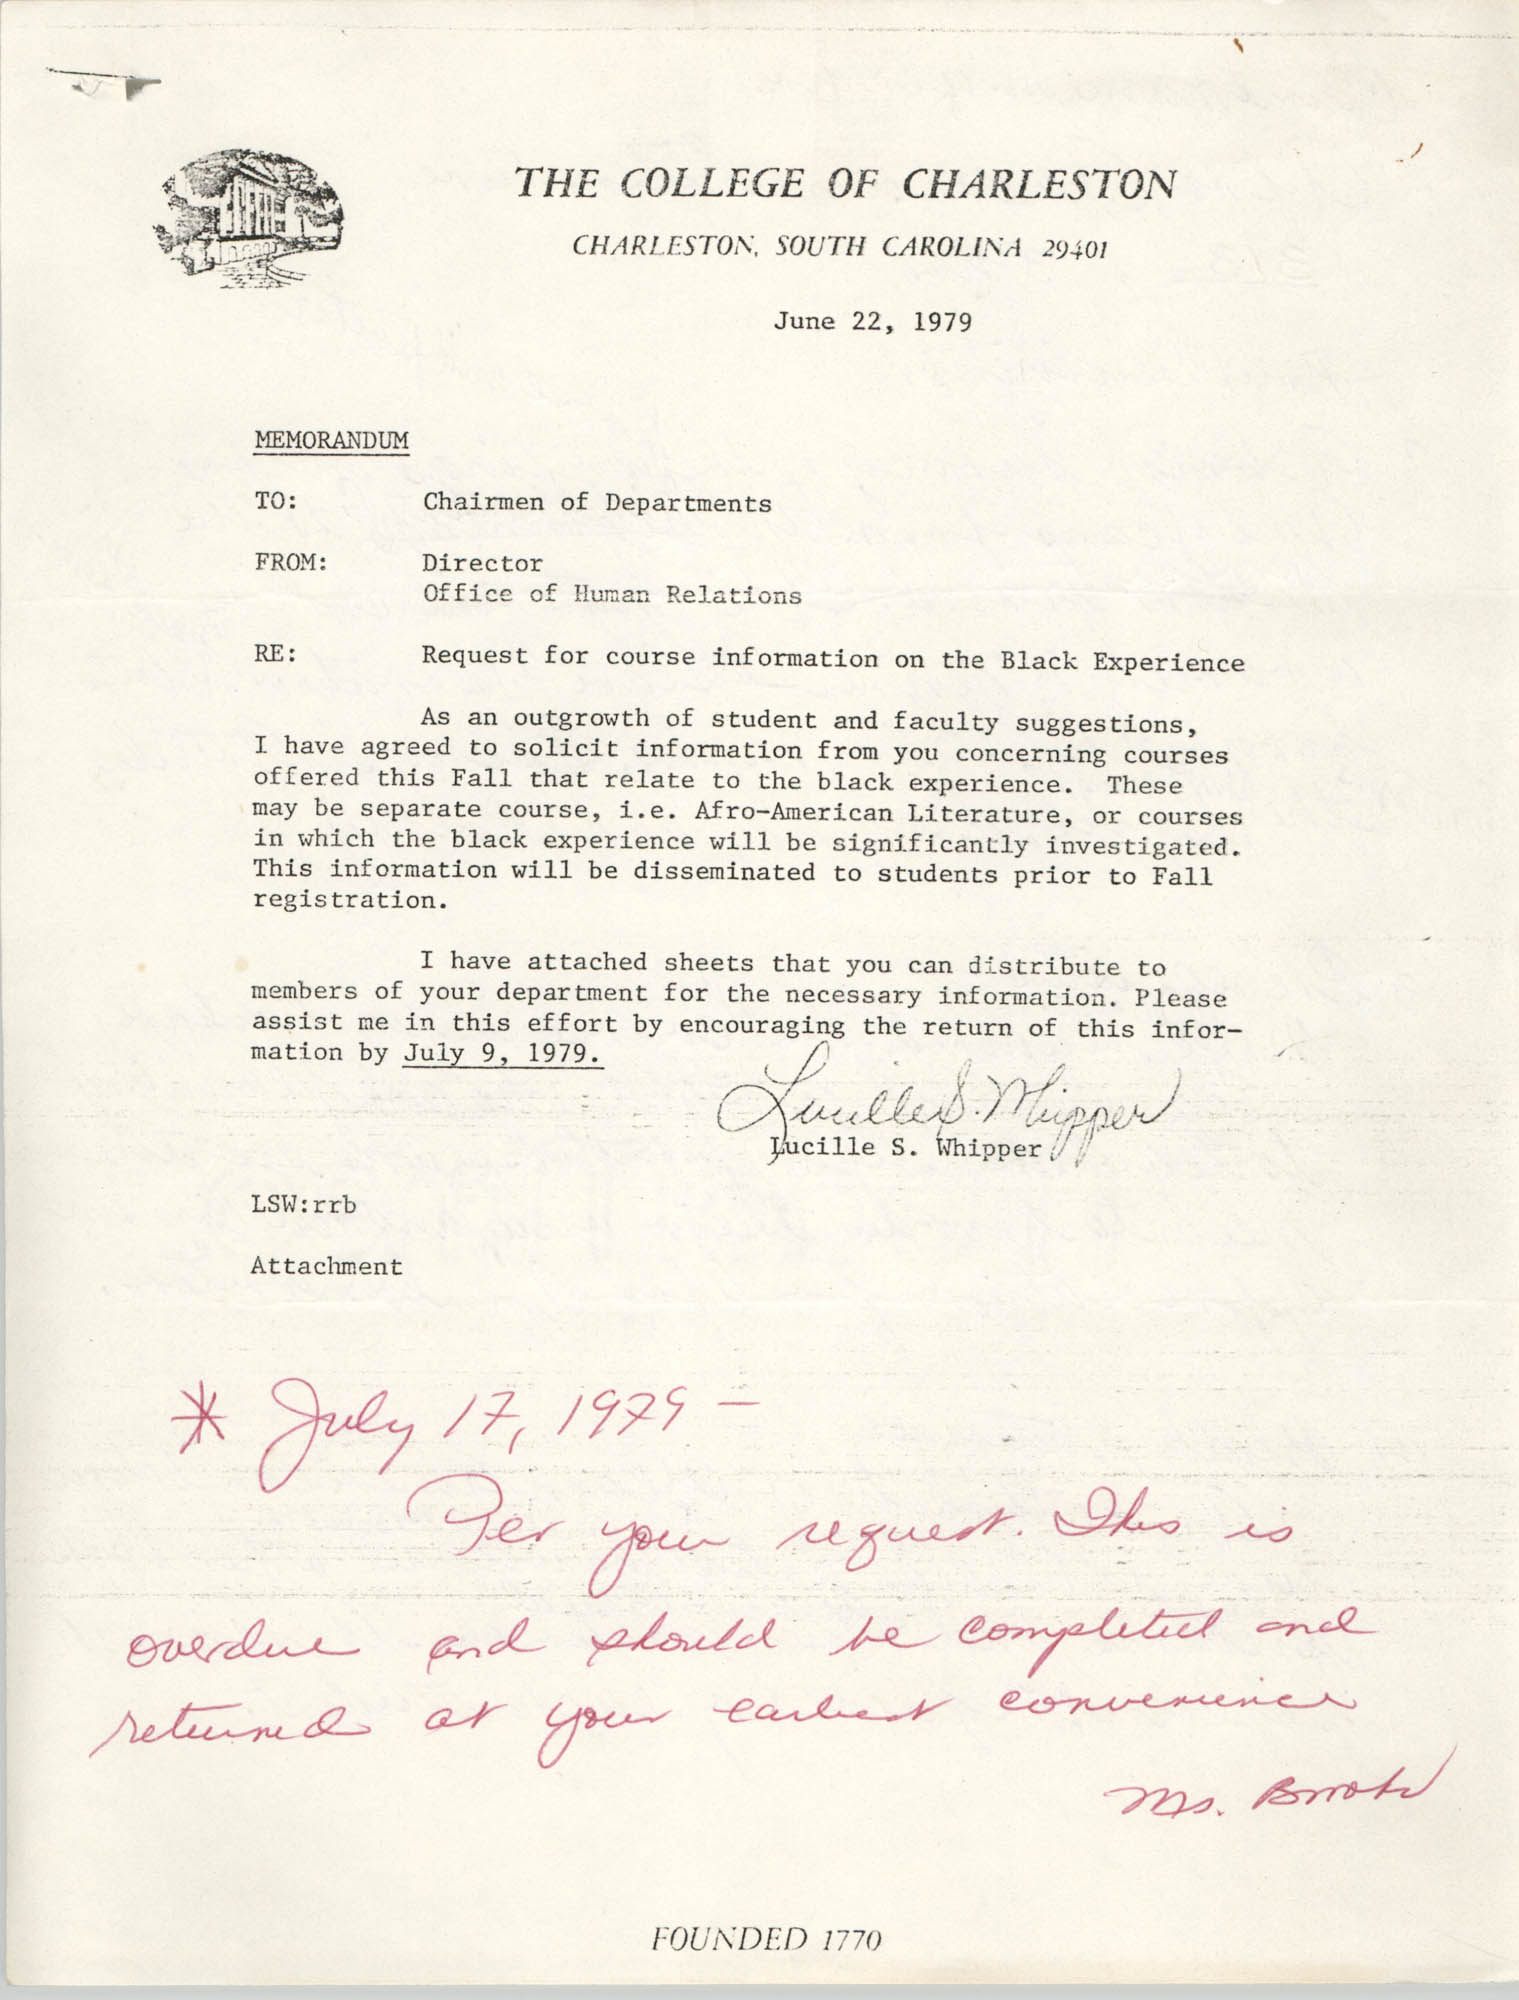 College of Charleston Memorandum, June 22, 1979